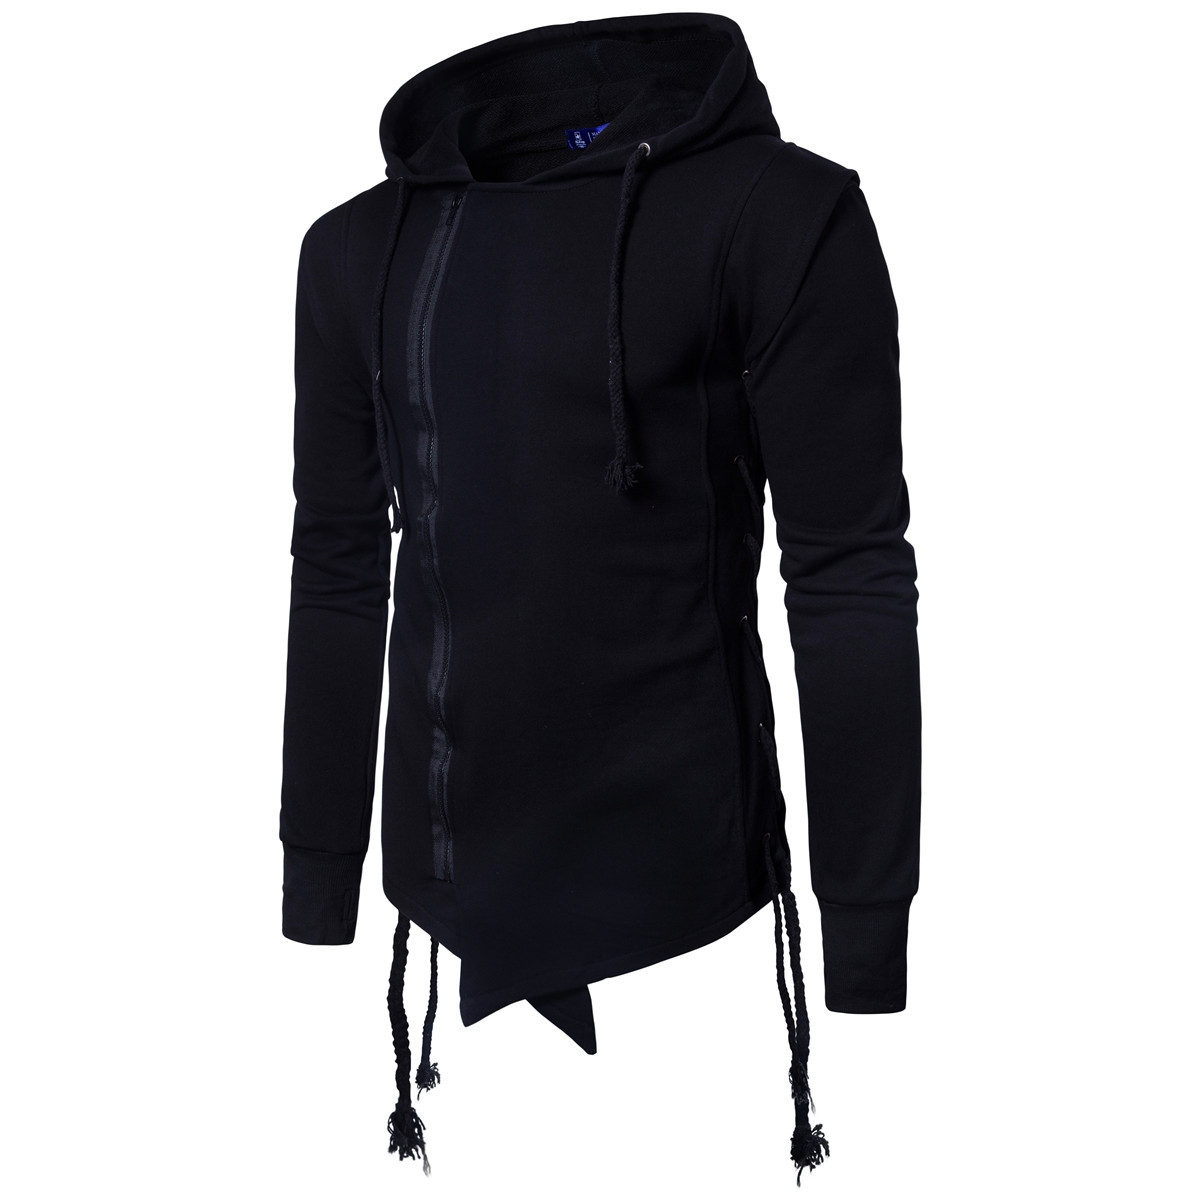 2018 Men's Cotton Lapel Drawstring Hooded Fashion Solid Color Slim Cardigan Hooded Pullover For Male Autumn Winter M-3XL